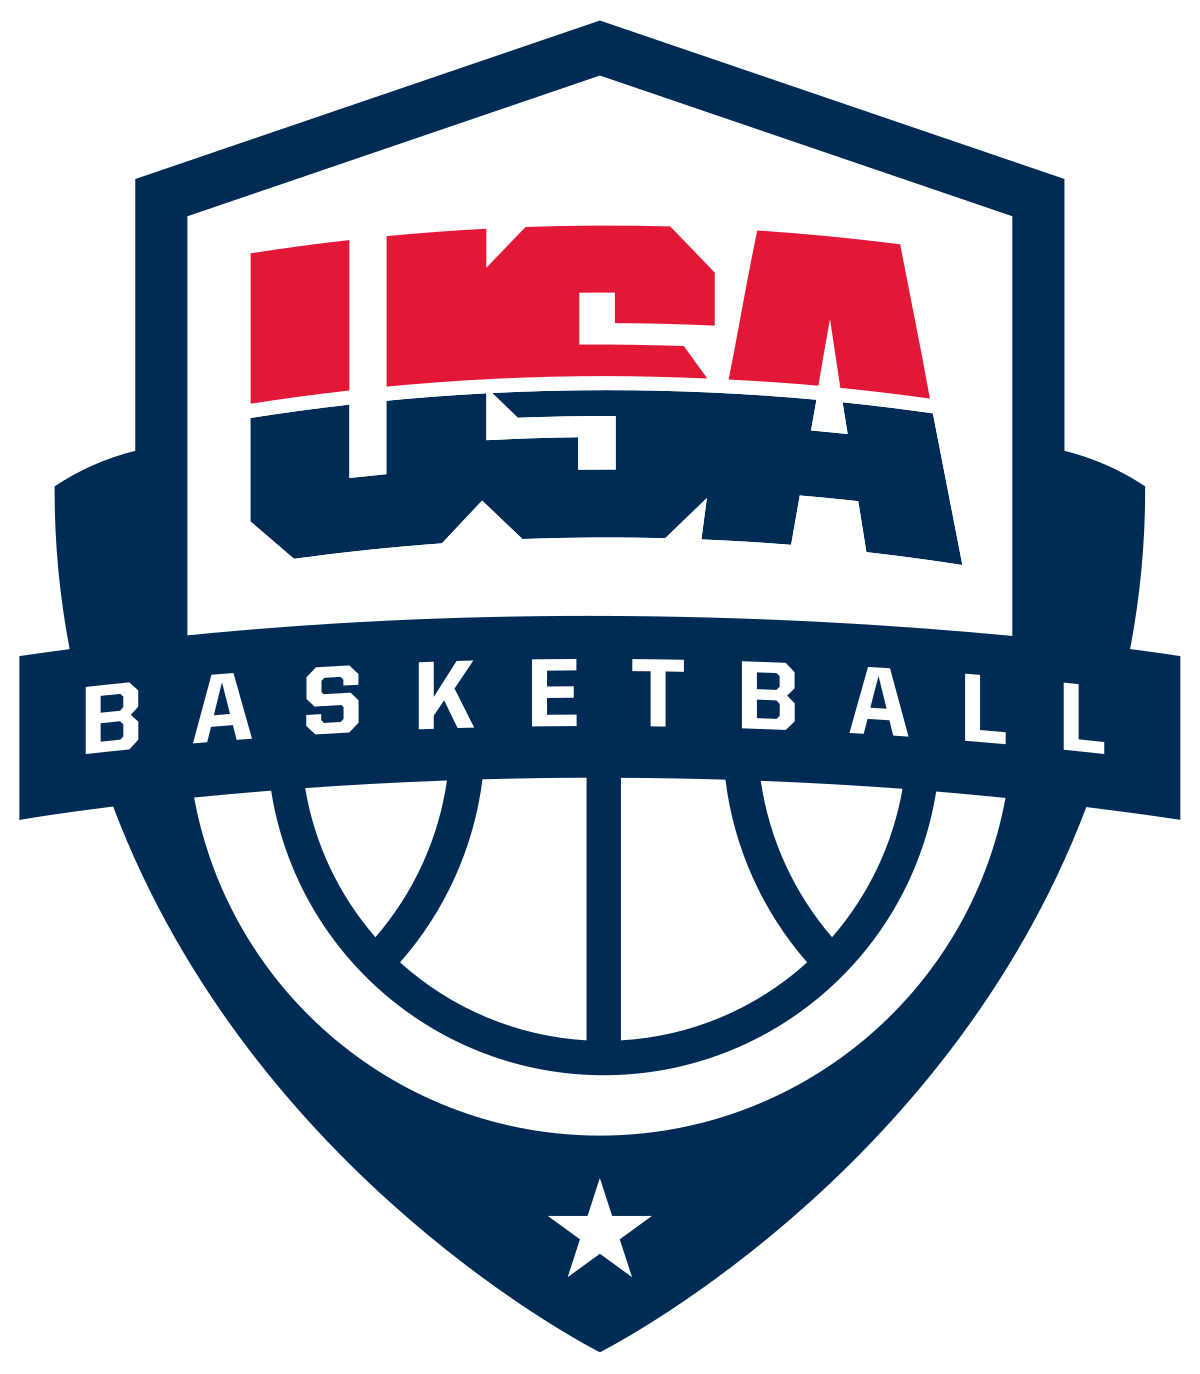 Has International Basketball Caught Up? Team USA Drops Back To Back Exhibition Games For First Time Since 1992